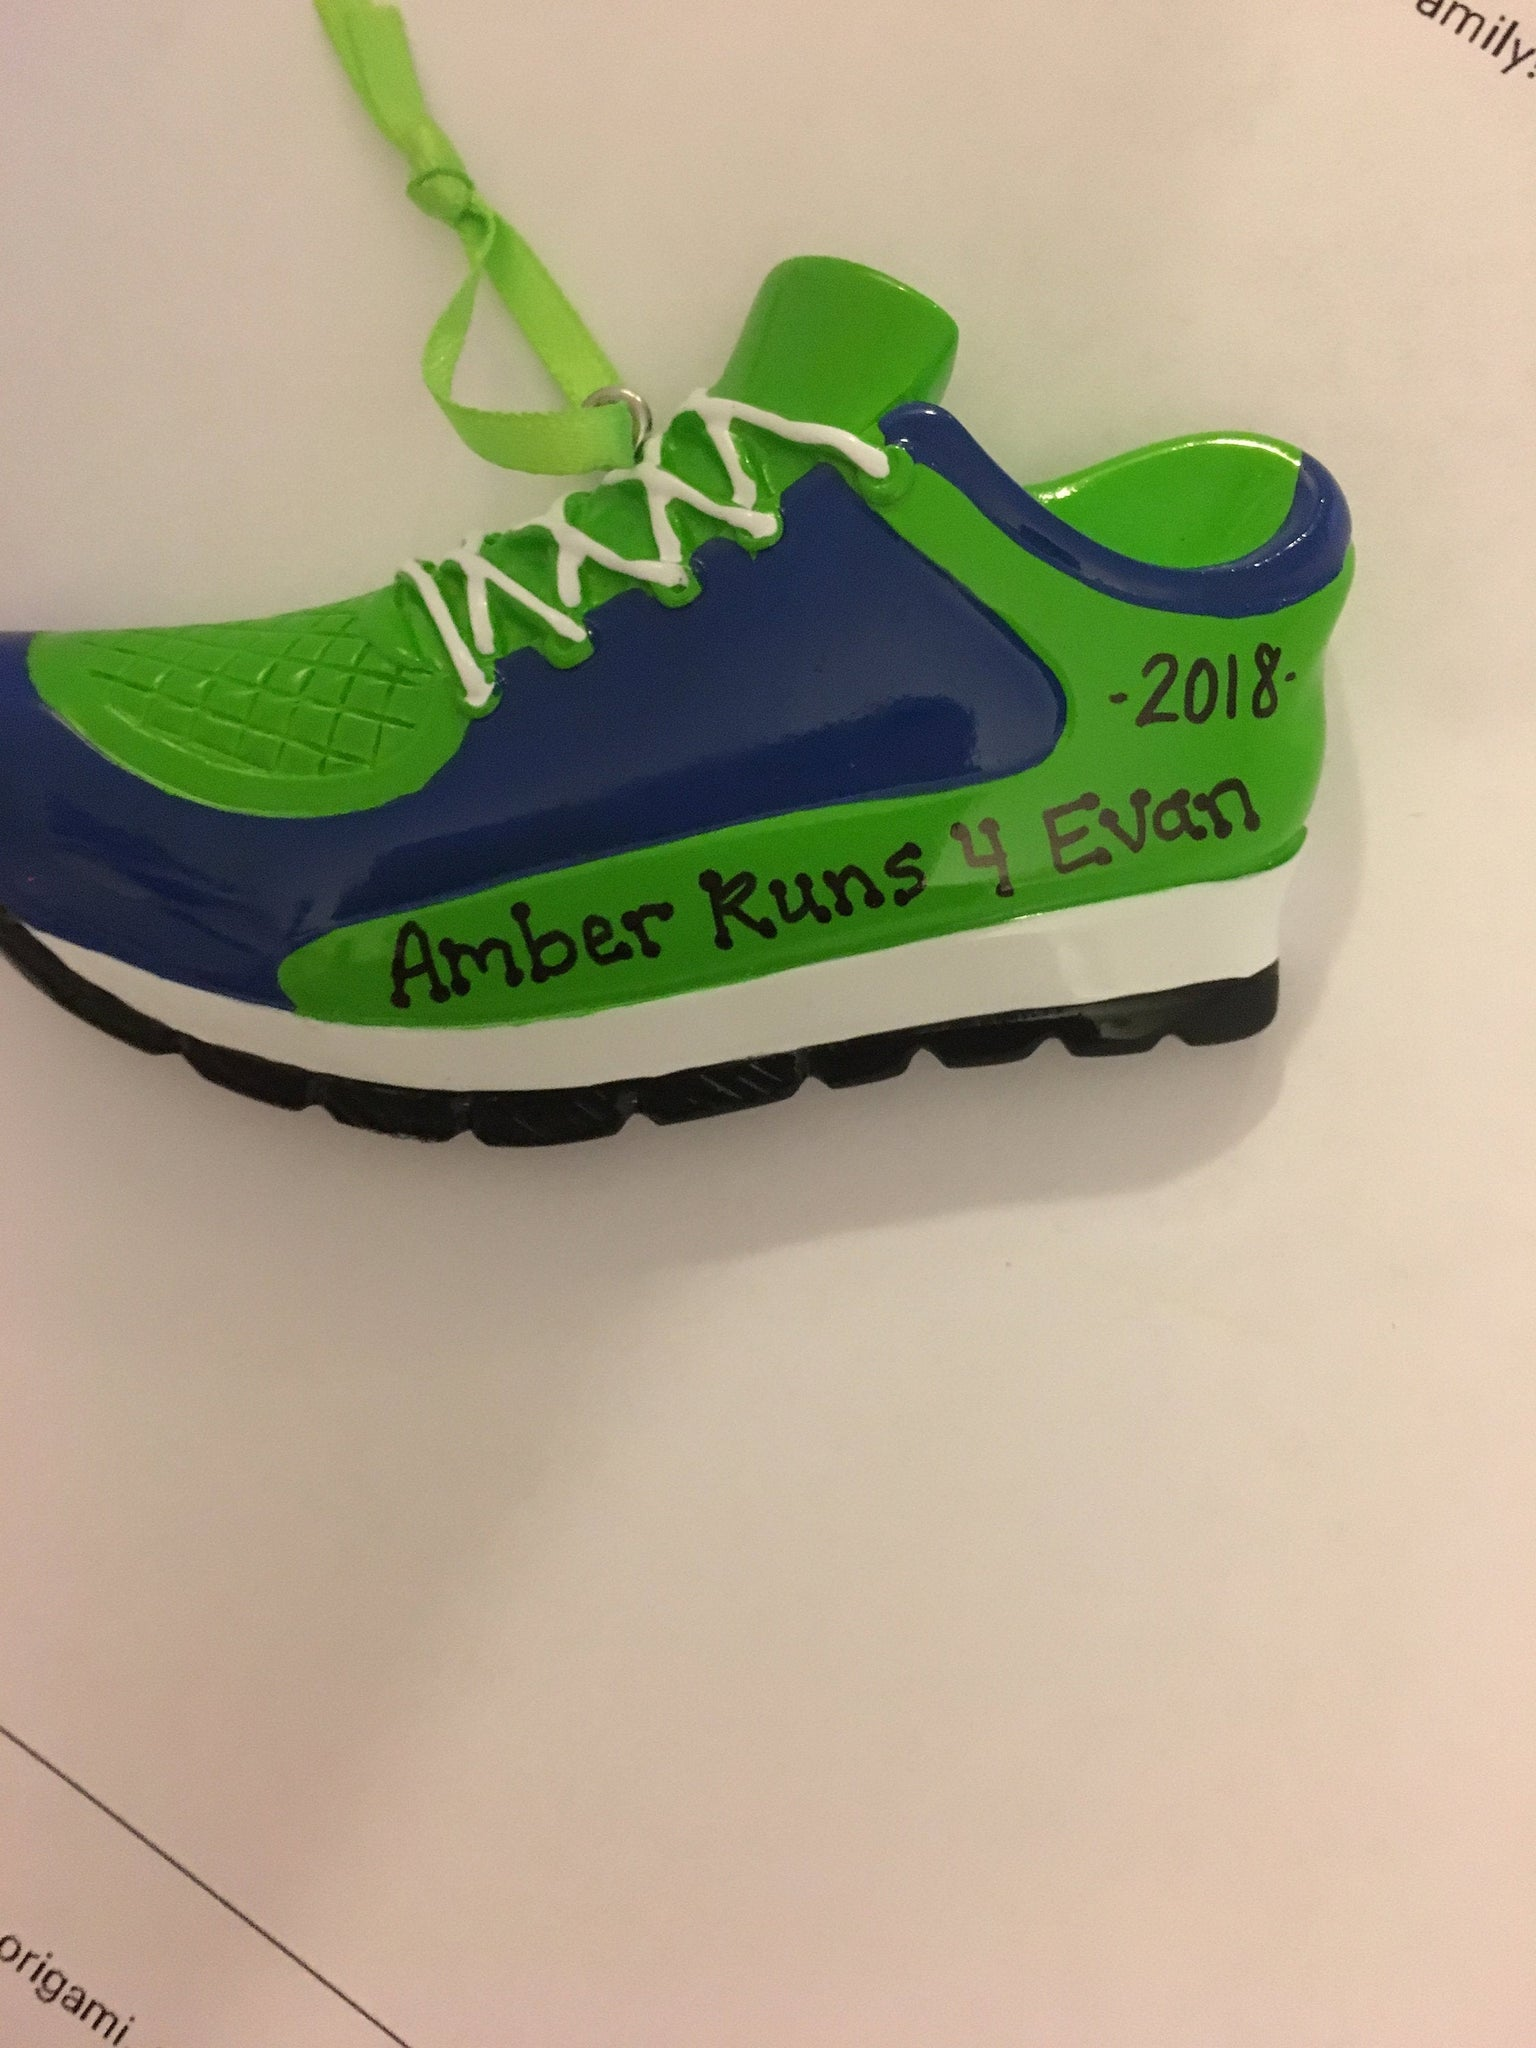 Track Sneakers Pink / Green Personalized Christmas Ornament